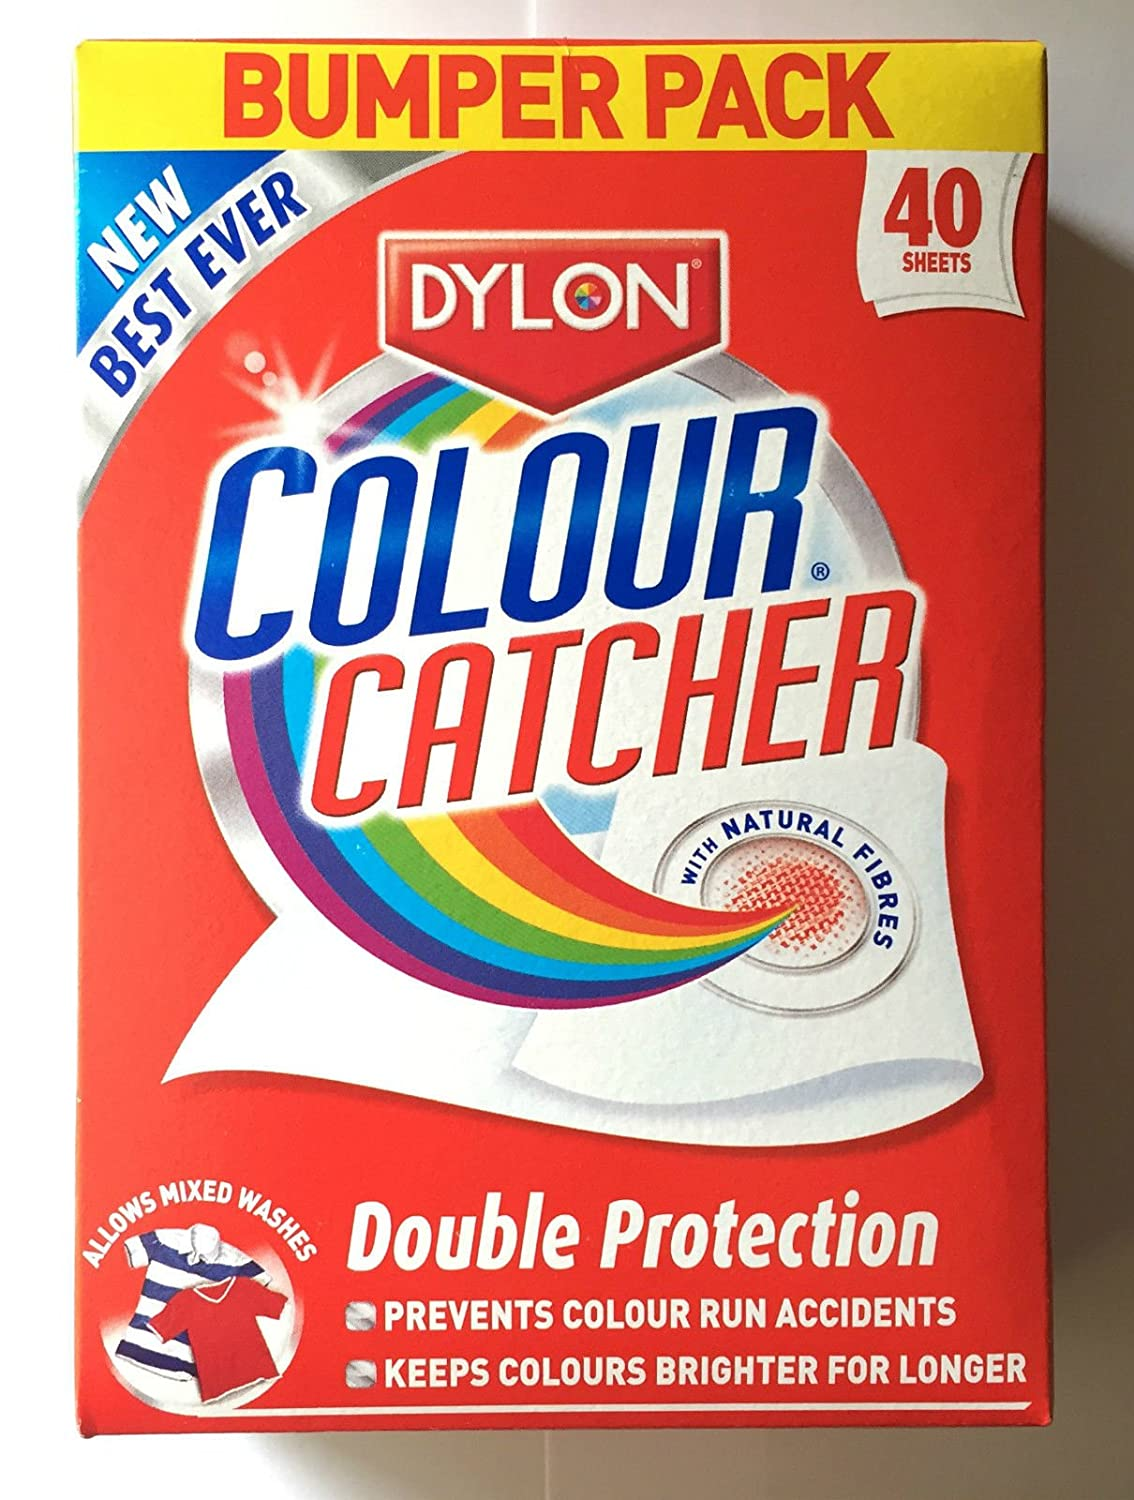 Colour catcher sheets - Dylon Colour Catcher Bumper Pack Of 40 As Seen On Tv The Uk S Number One Colour Catcher Amazon Co Uk Kitchen Home